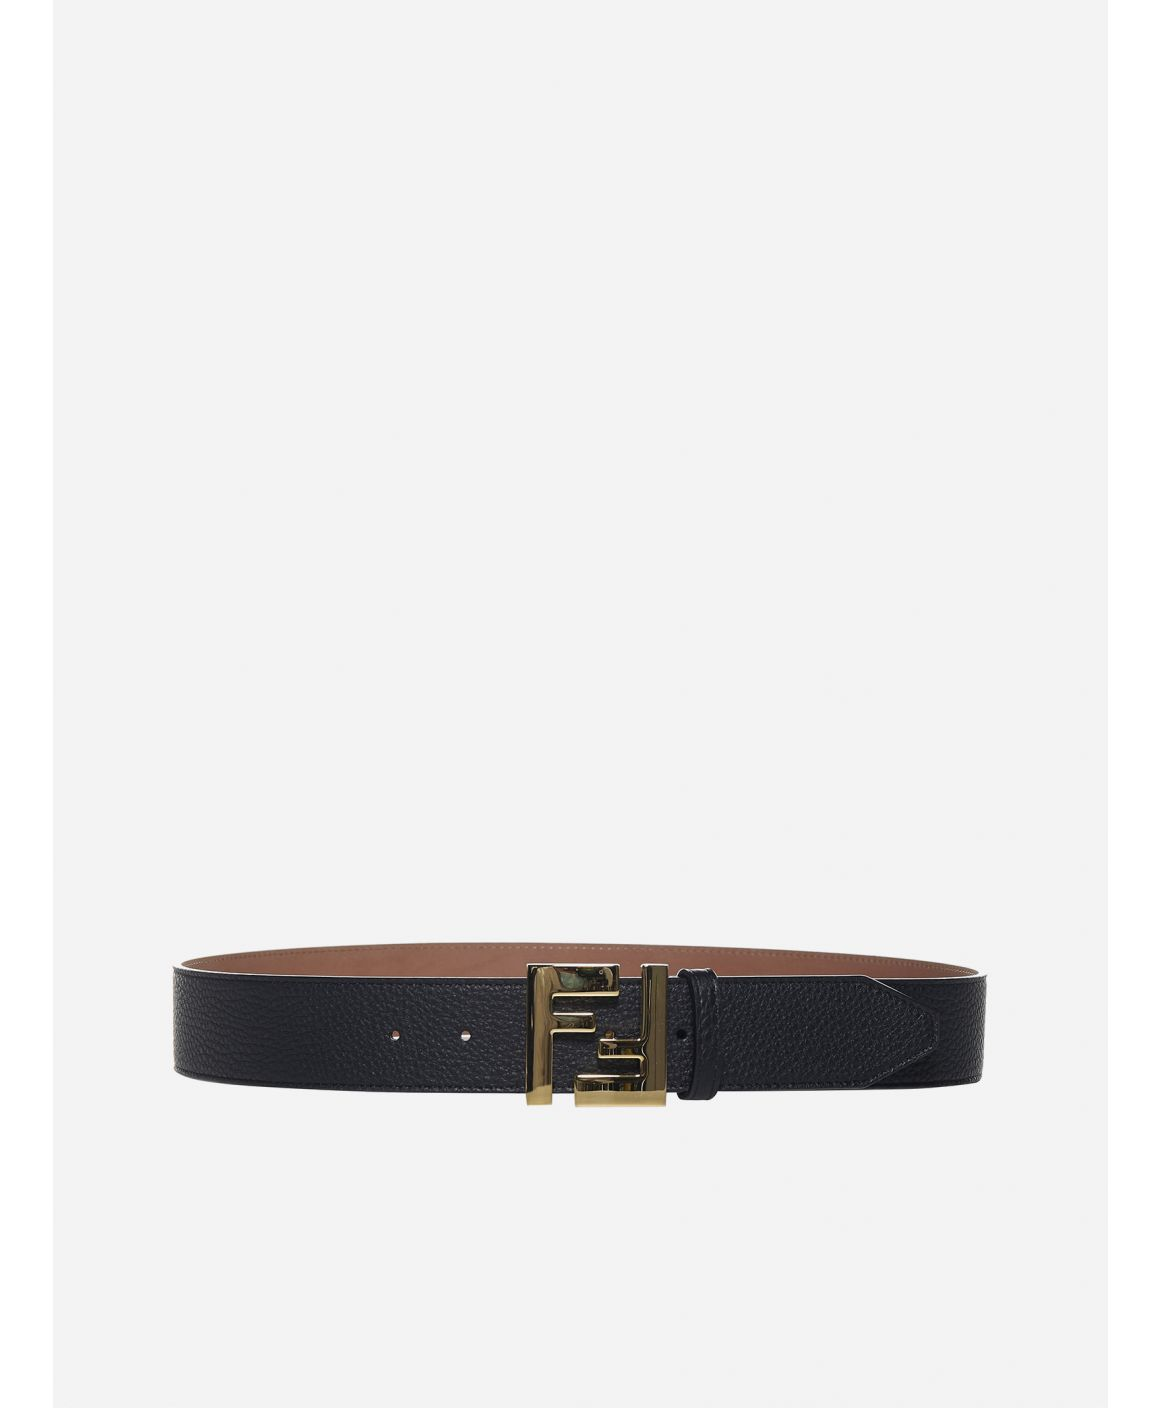 FF logo leather belt